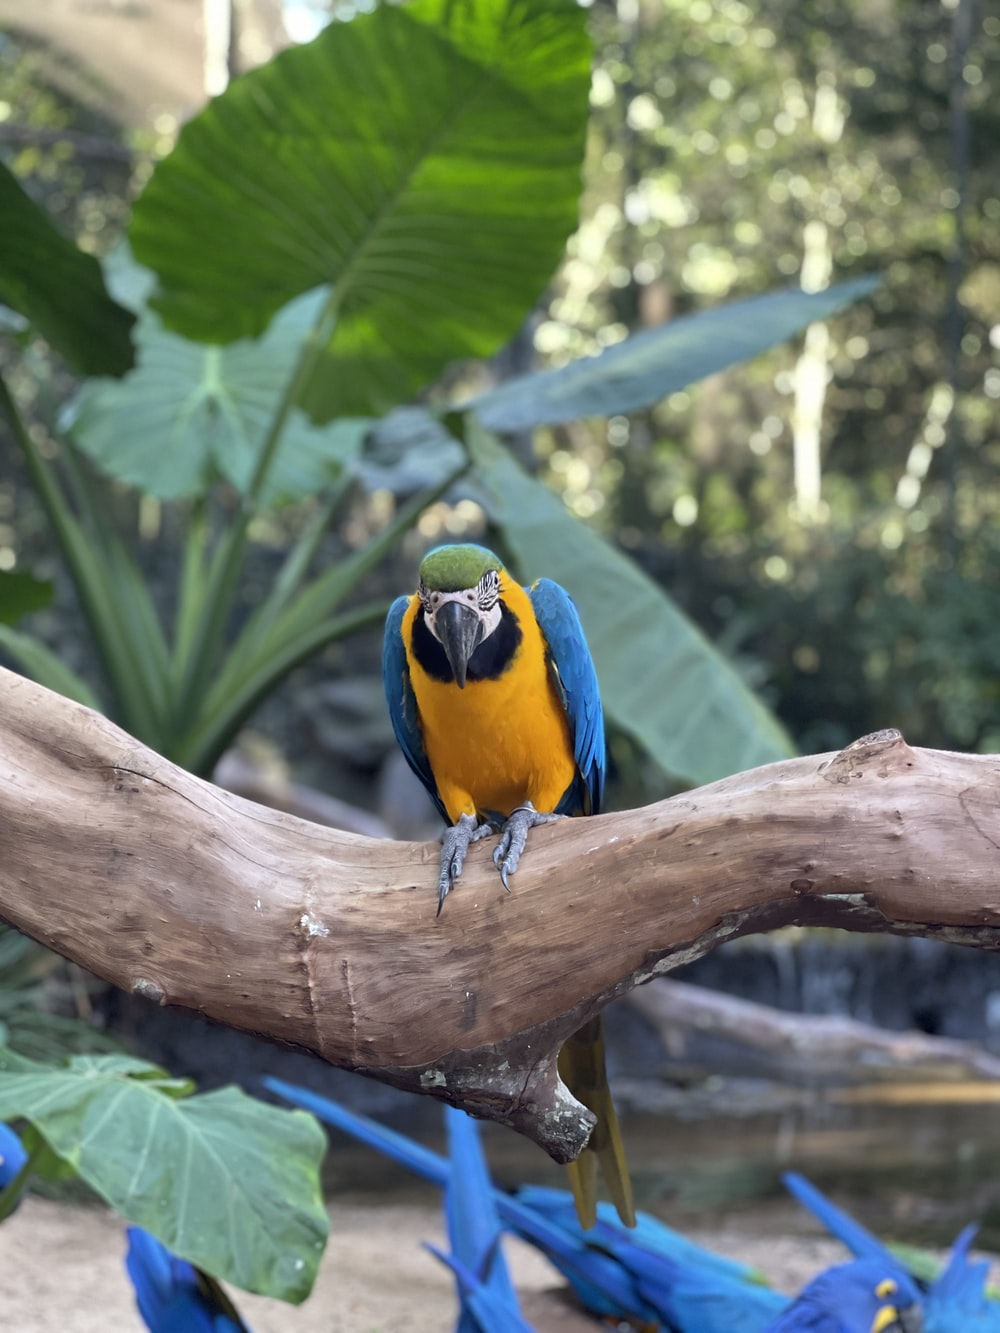 blue yellow and green parrot on brown tree branch during daytime